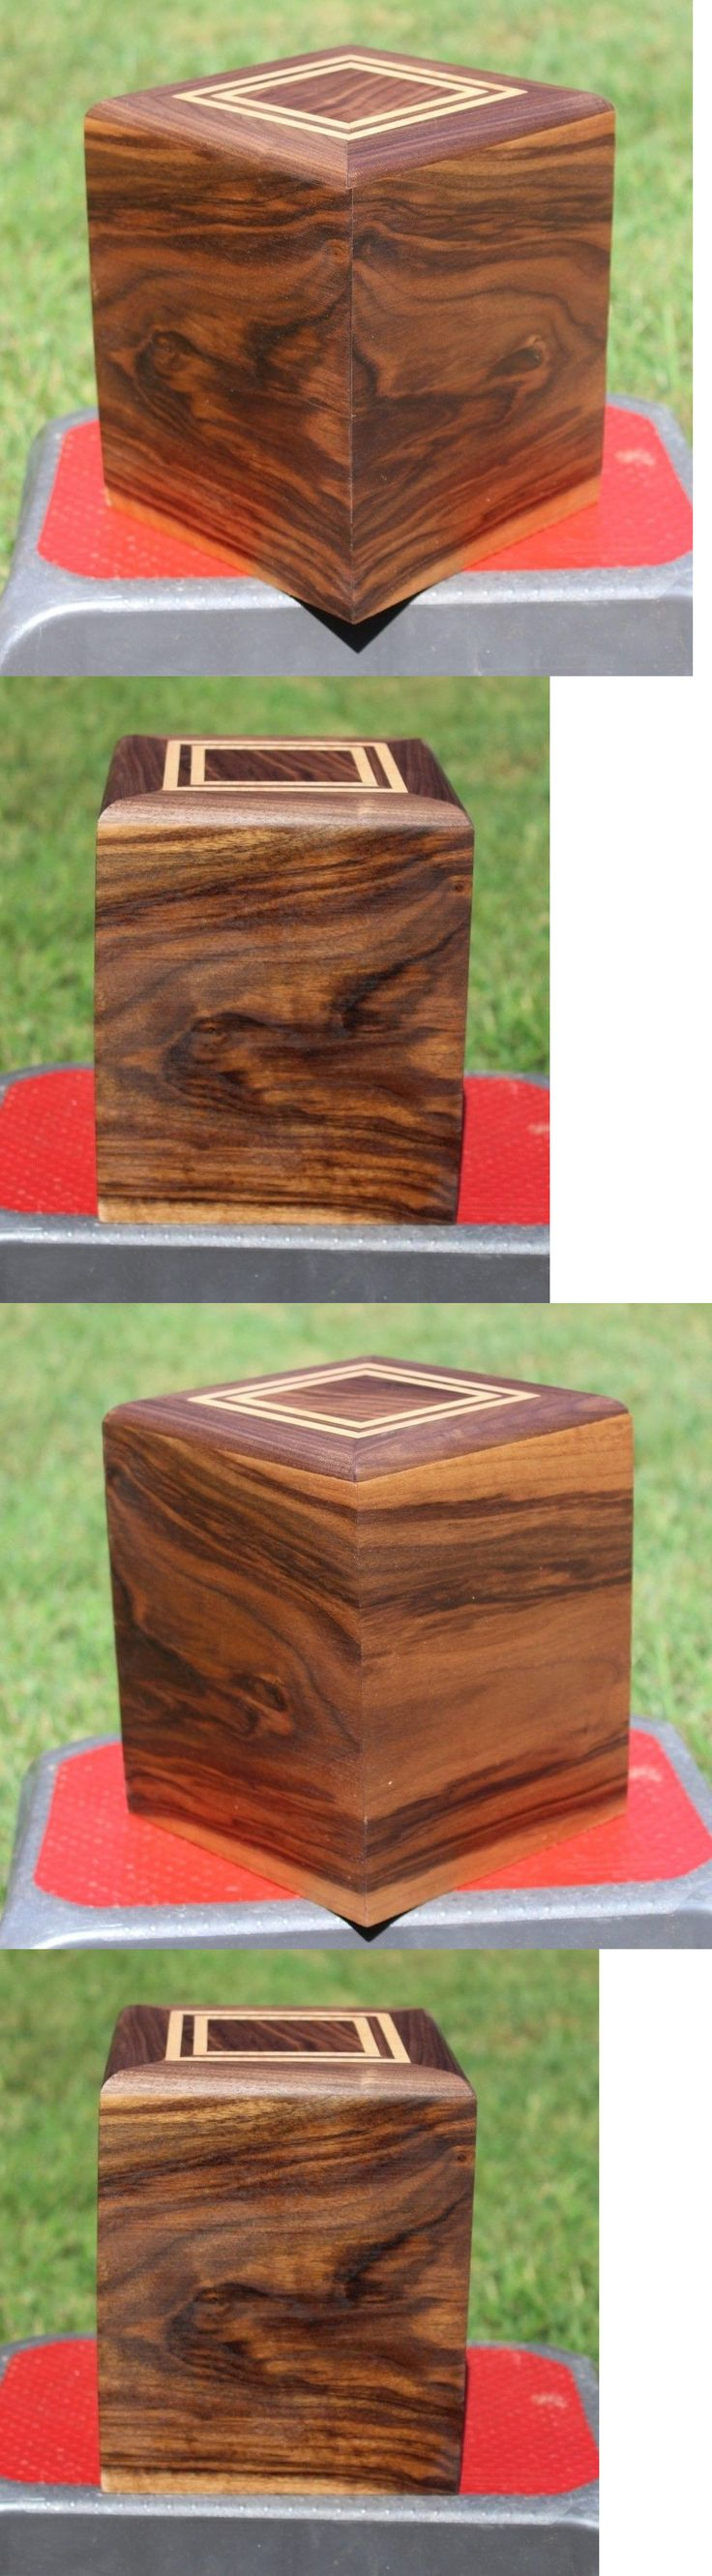 Jewelry Boxes 3820: Adult(210 Pounds) Urn-Bottom Load-Figured Walnut And Tiger Maple-Free Ship(Us) -> BUY IT NOW ONLY: $149.95 on eBay!